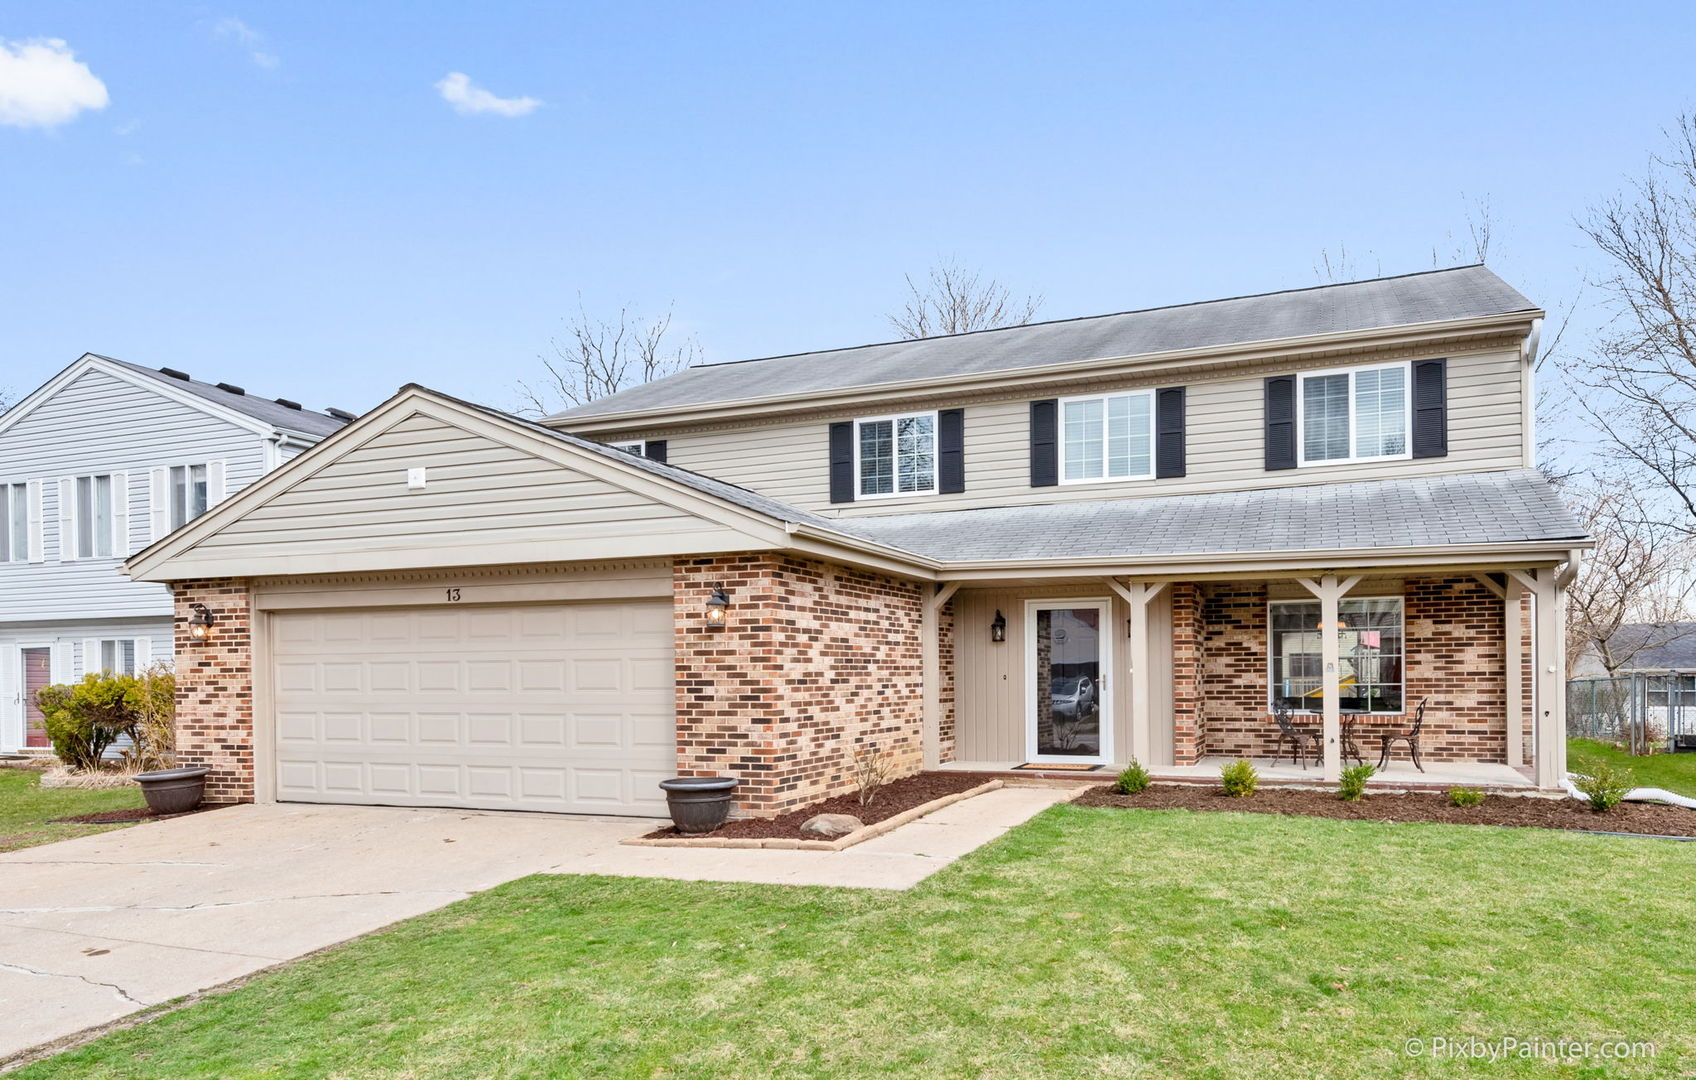 13 Manchester Lane, Vernon Hills in Lake County, IL 60061 Home for Sale